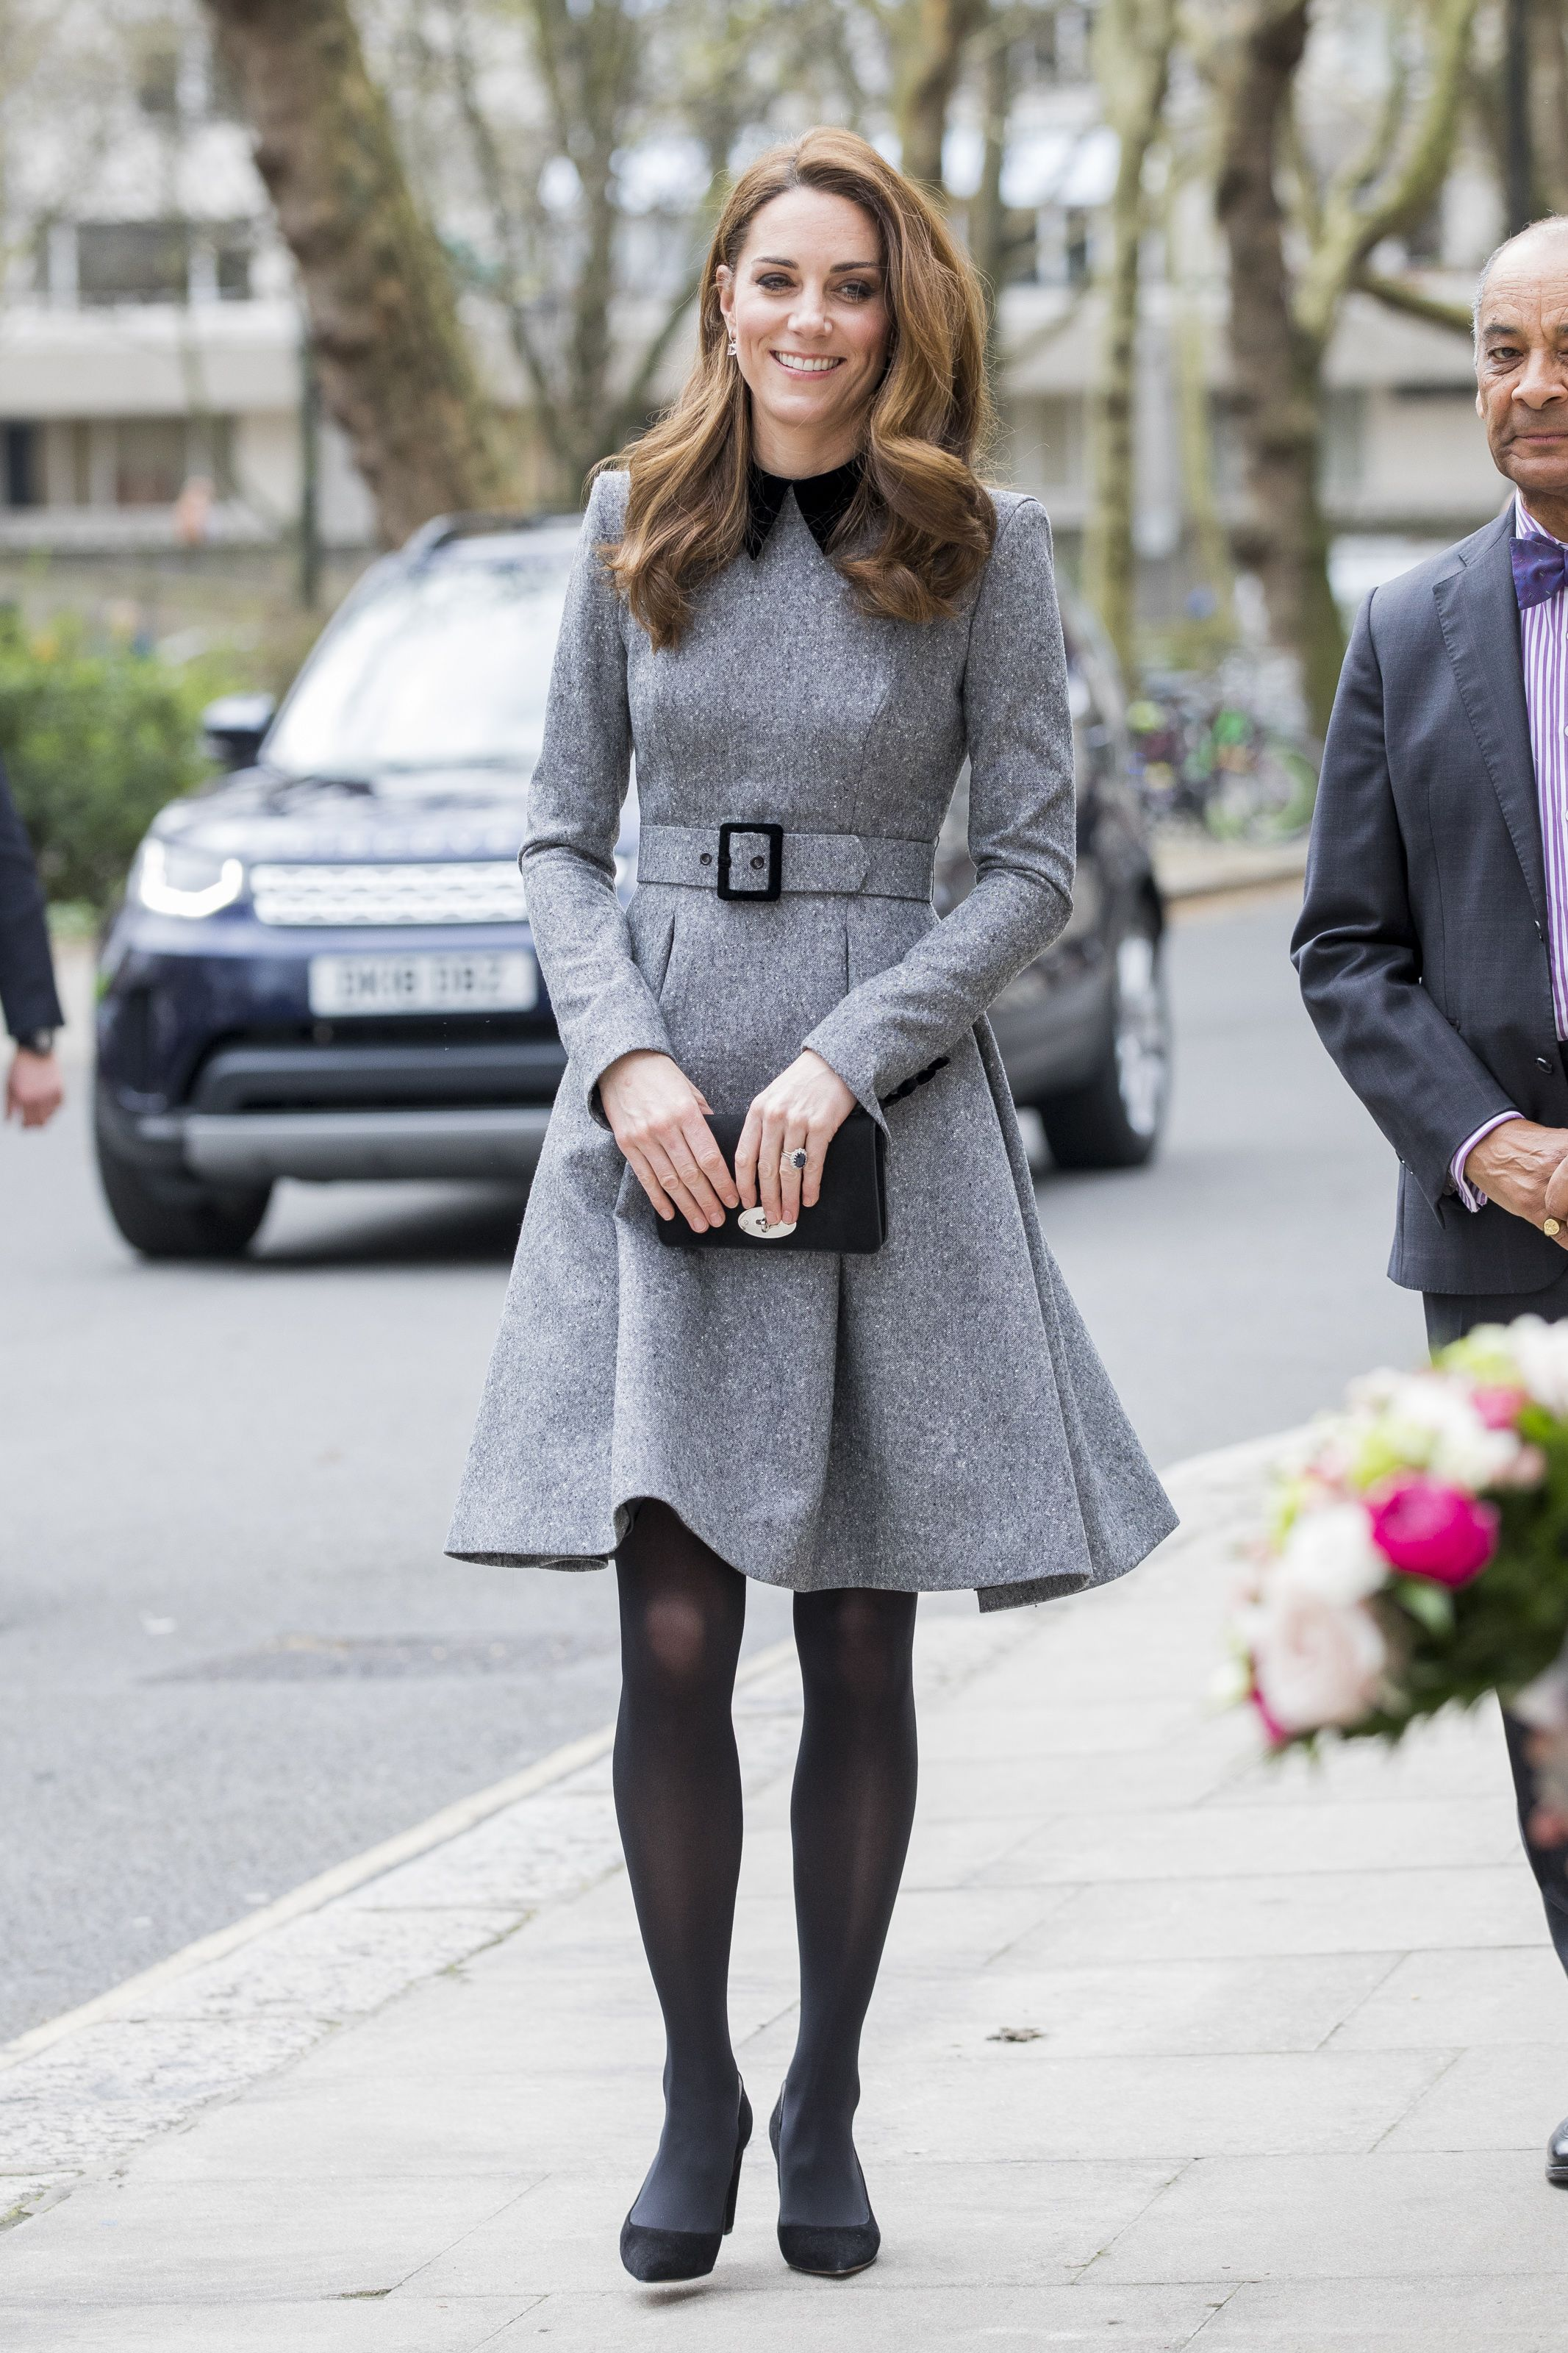 kate middleton s best outfits ever kate middleton style gallery kate middleton style